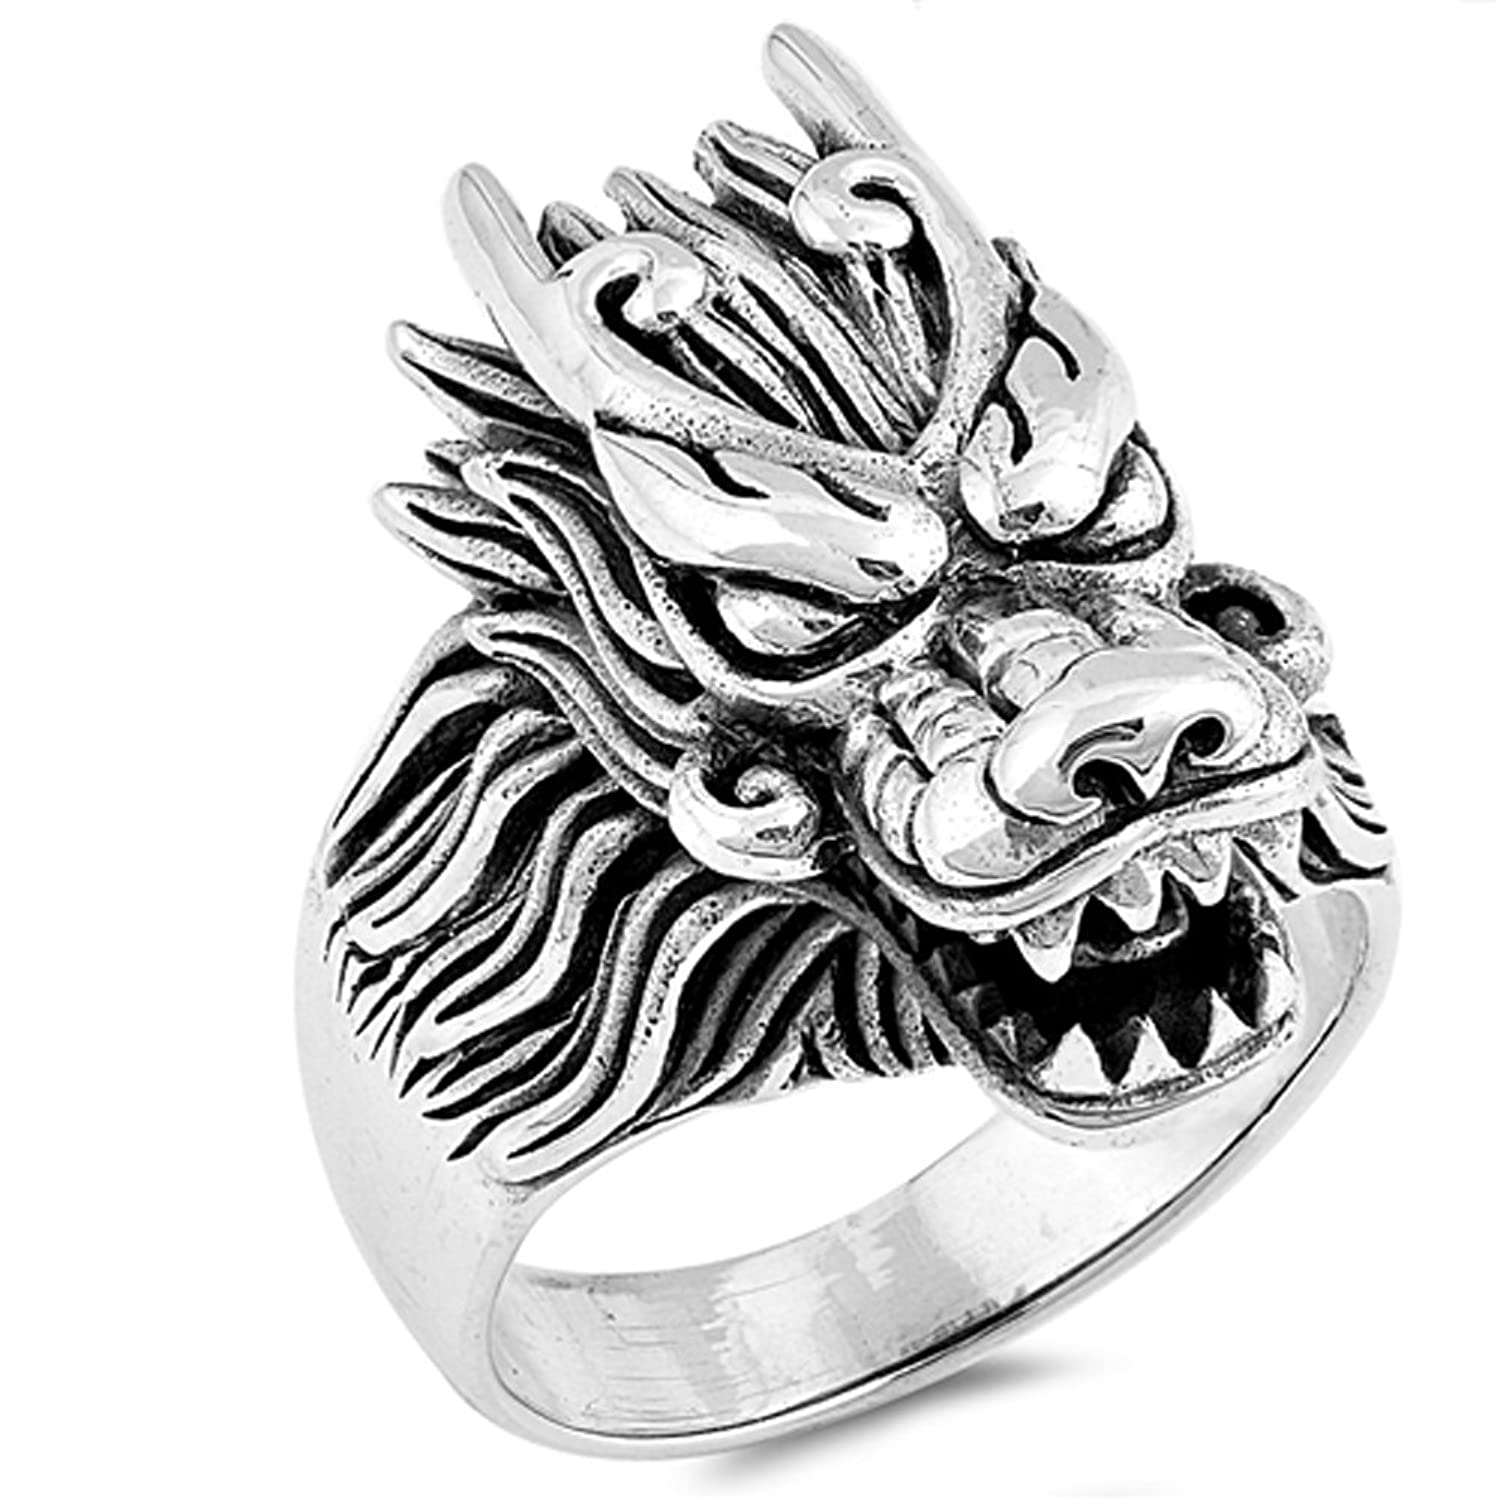 Dragon Large Heavy Men's Ring Sterling Silver Chinese New Year Band Sizes 7-13